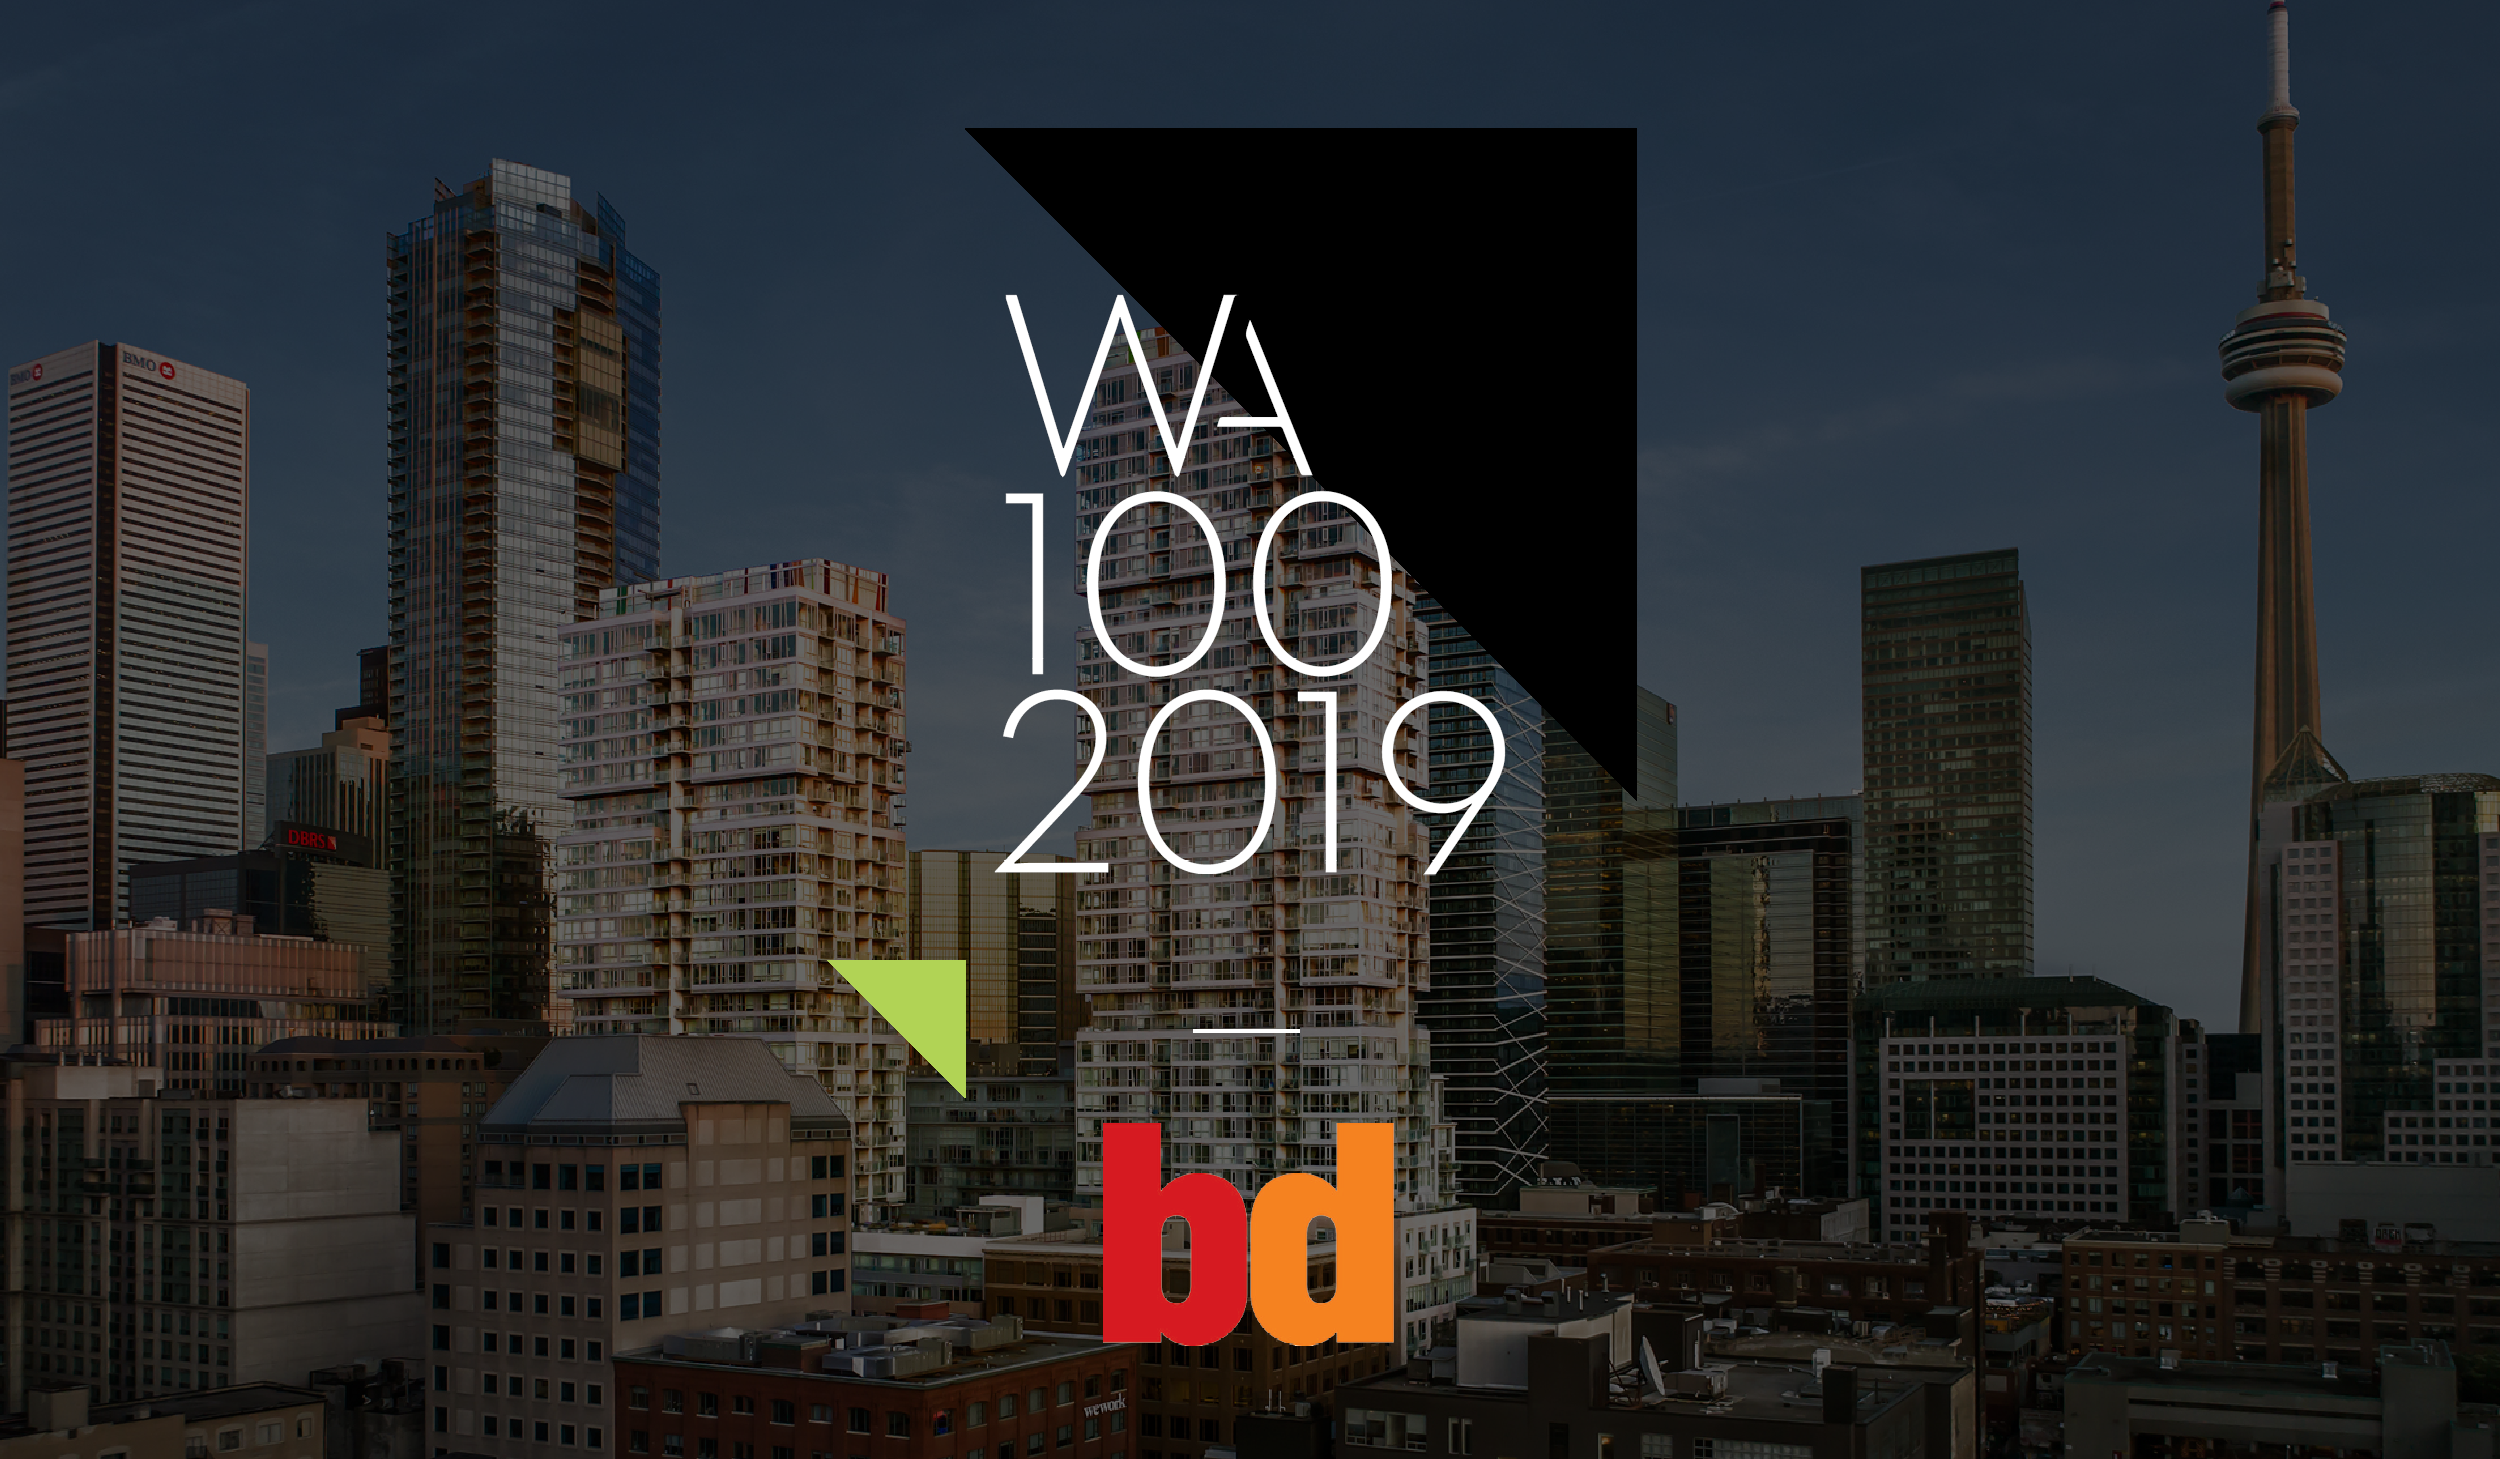 twin high-rise condo towers, Studio on Richmond, with the WA100 2019 and BD magazine logos superimposed overtop